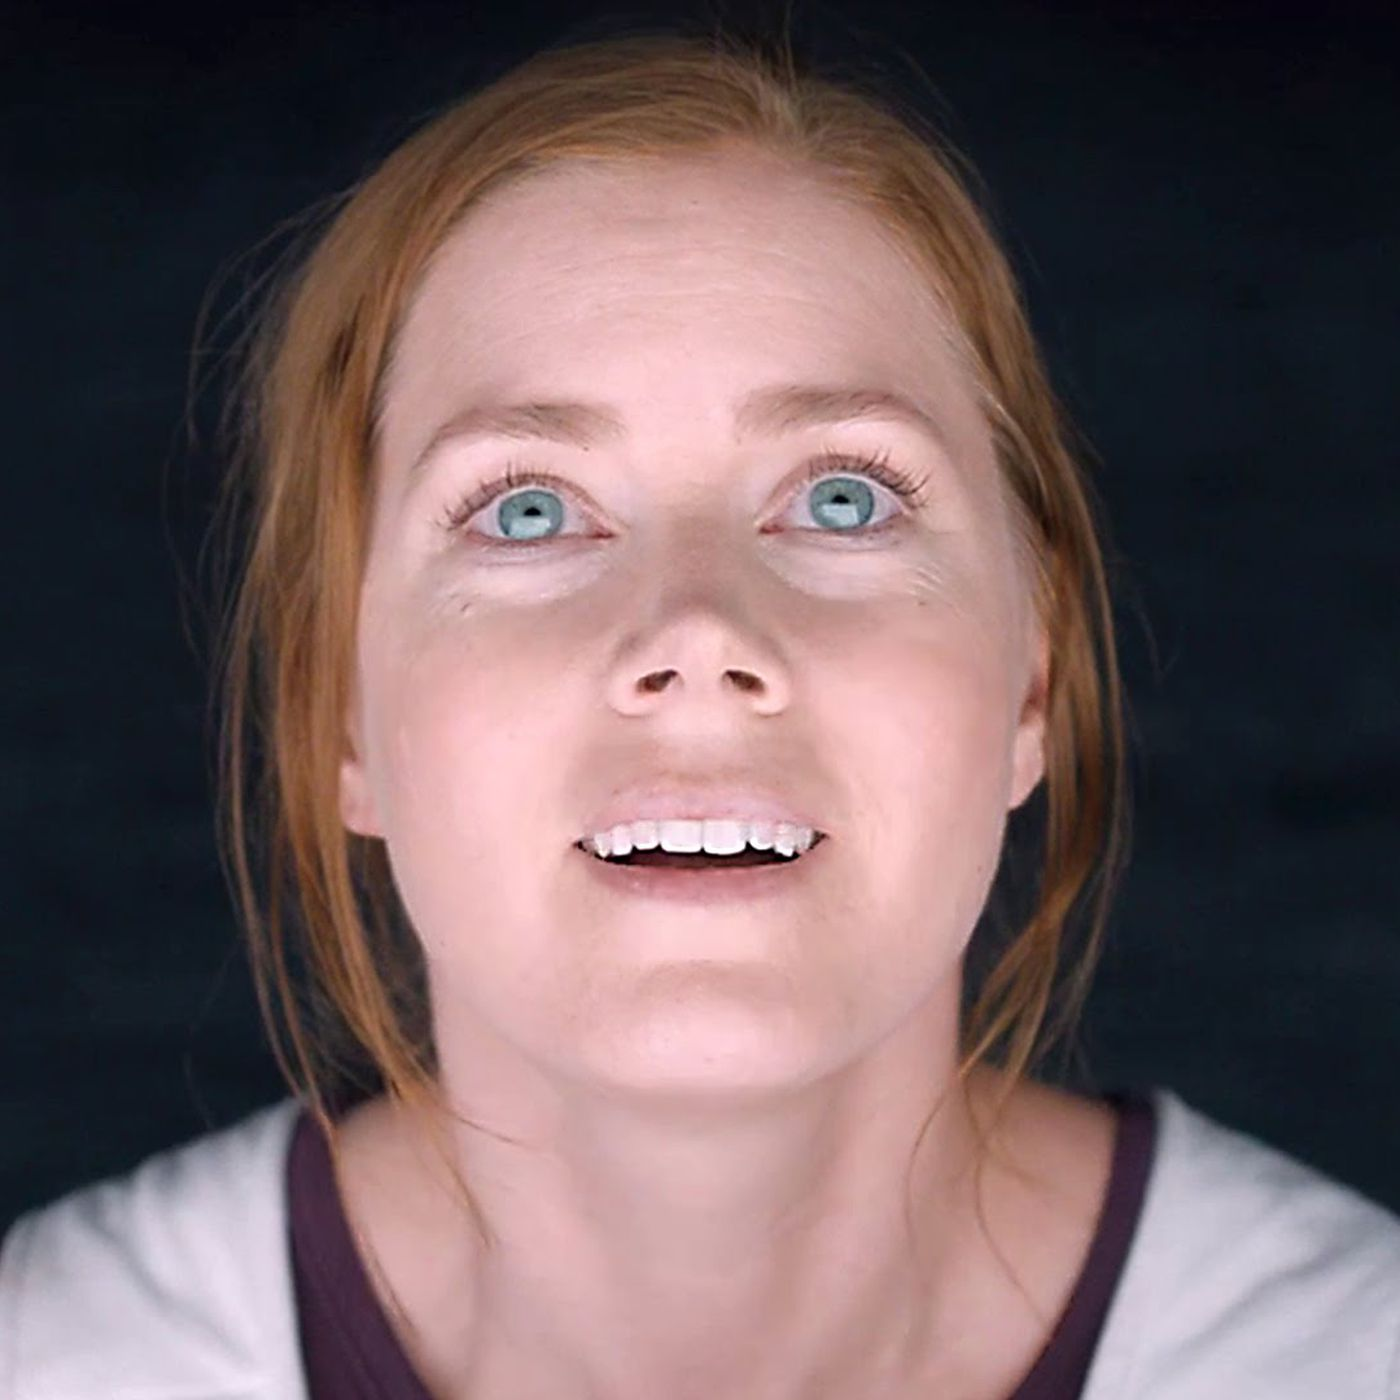 Amy Adams Wikipedia Español arrival spoilers: let's discuss the hit movie's most